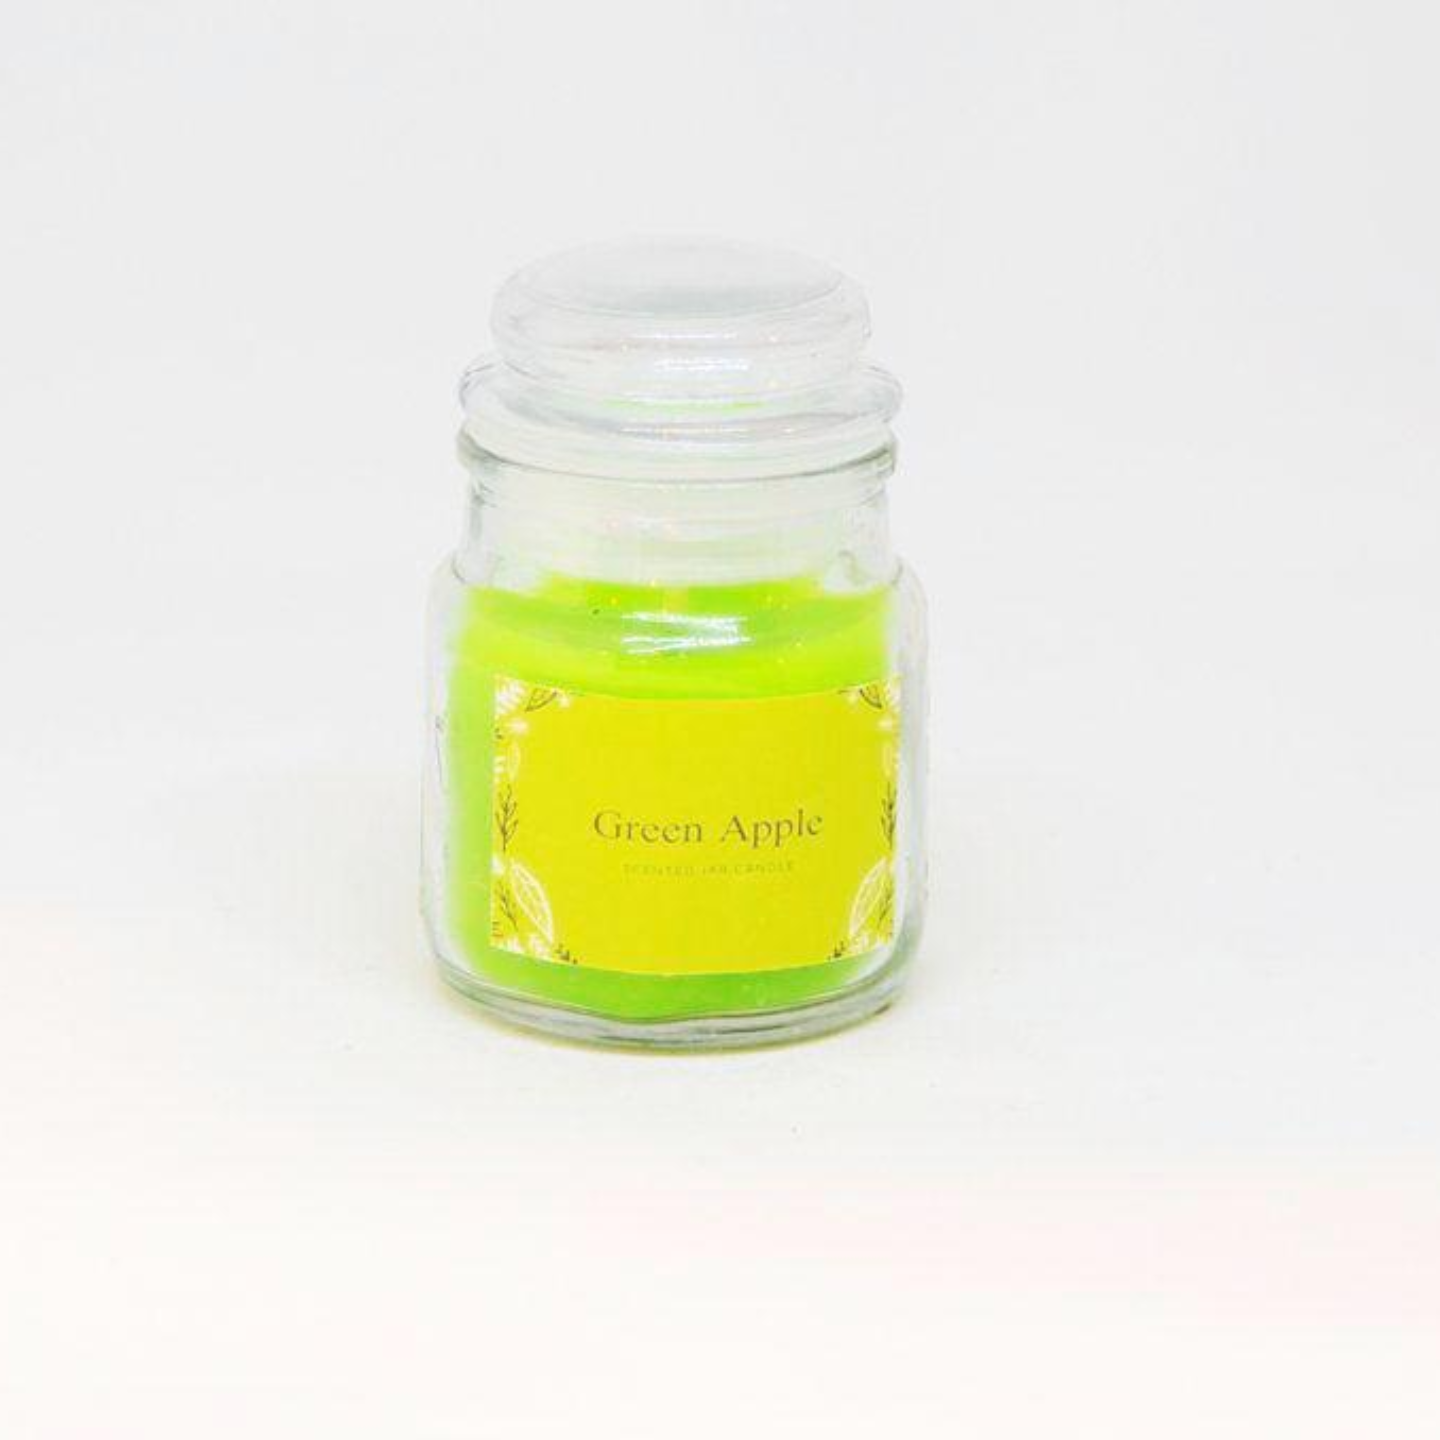 Scented Jar Candle - Green Apple